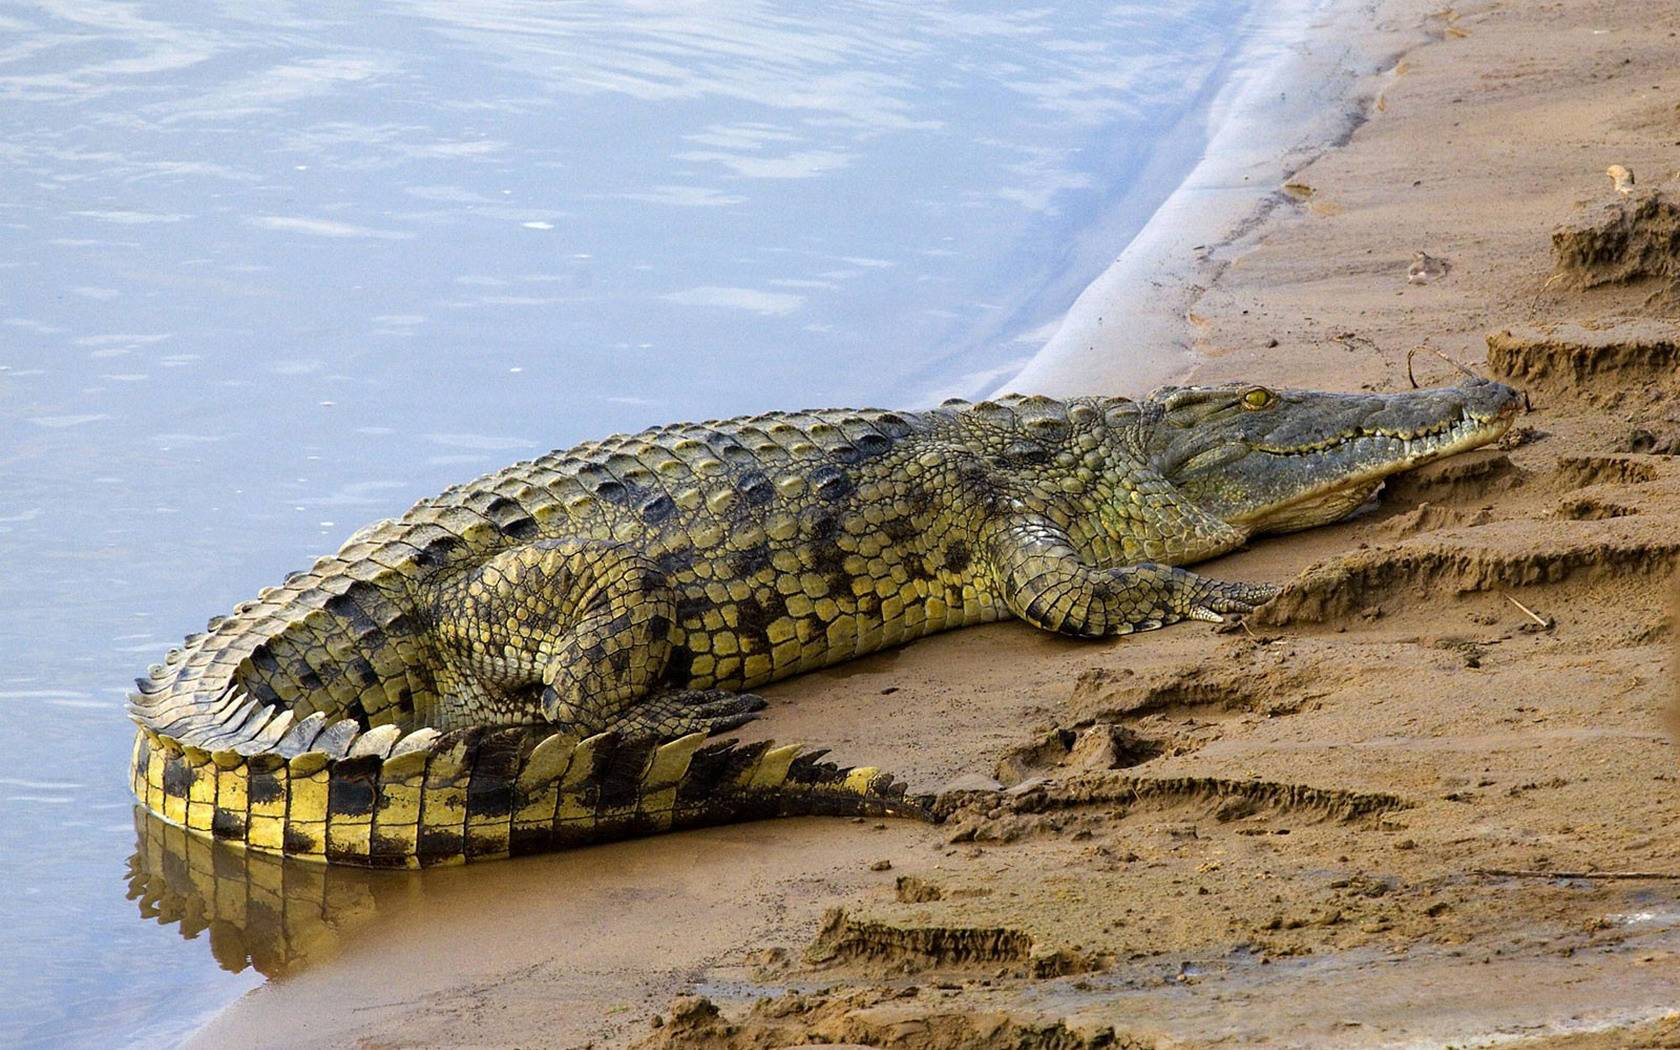 Crocodile wallpaper - Animal-Lovers Picture